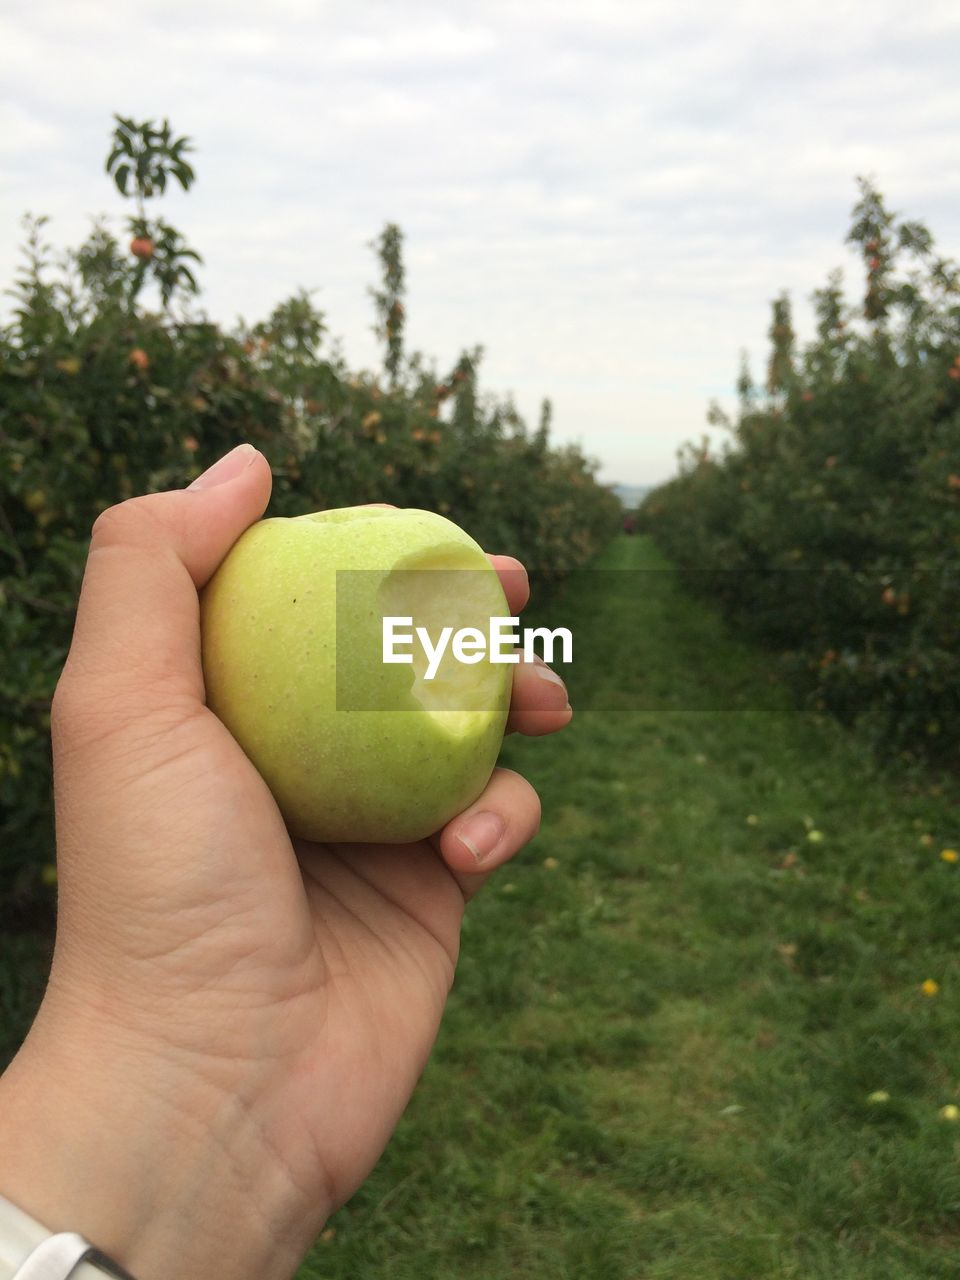 CROPPED IMAGE OF HAND HOLDING APPLES